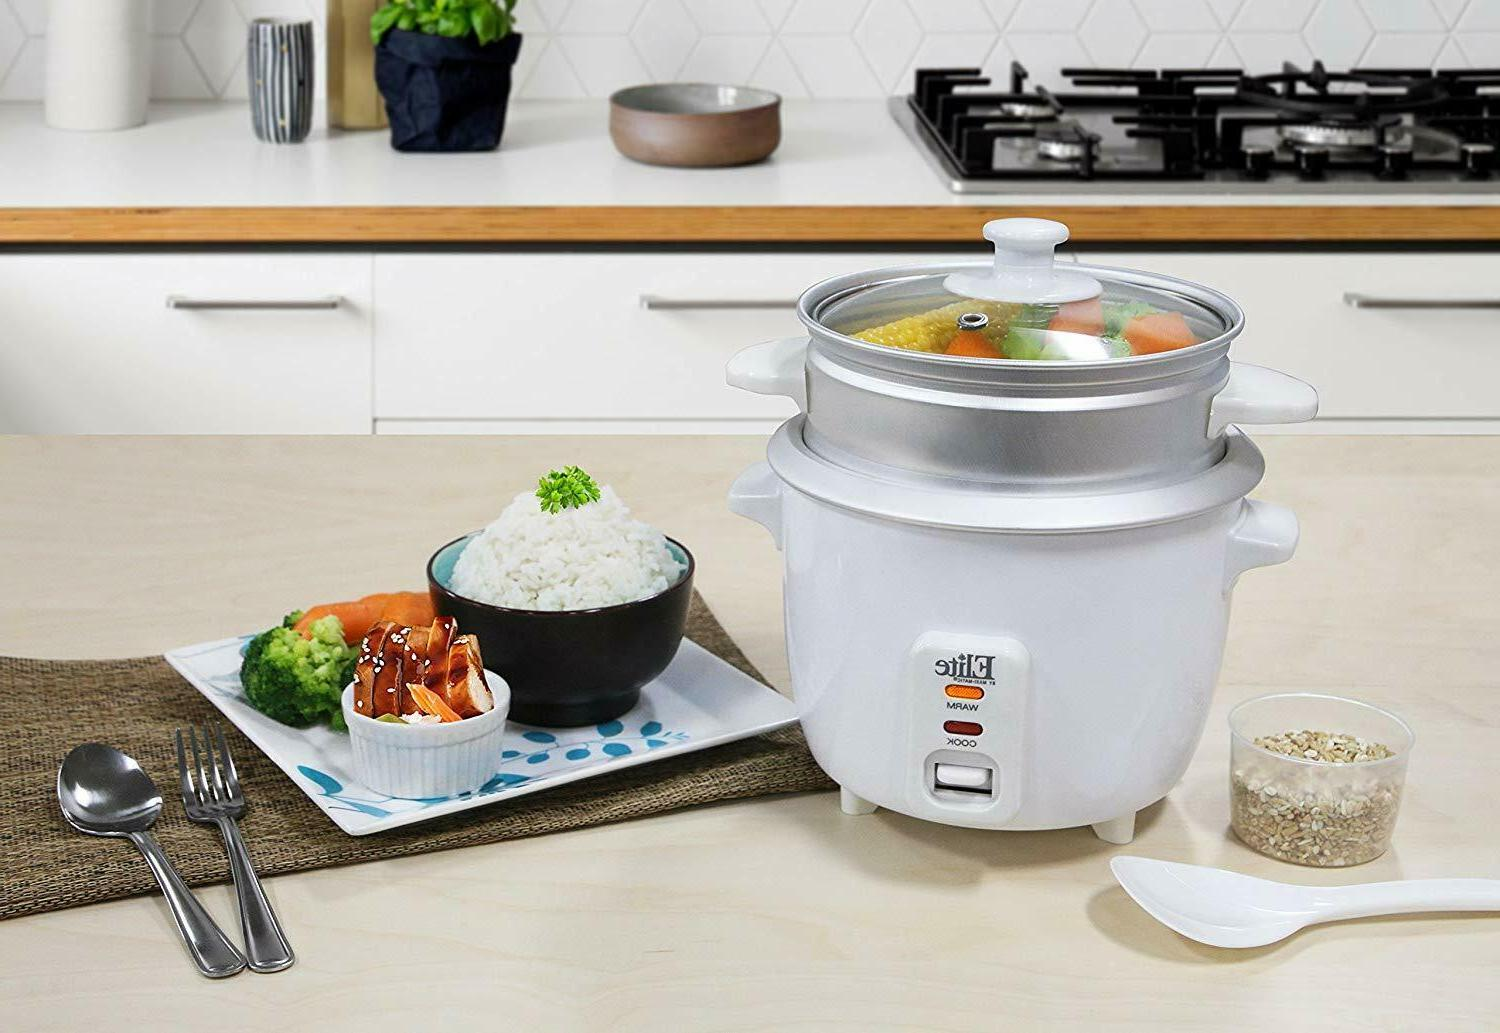 6 Rice with Steamer Warm Makes Soups, Stews,